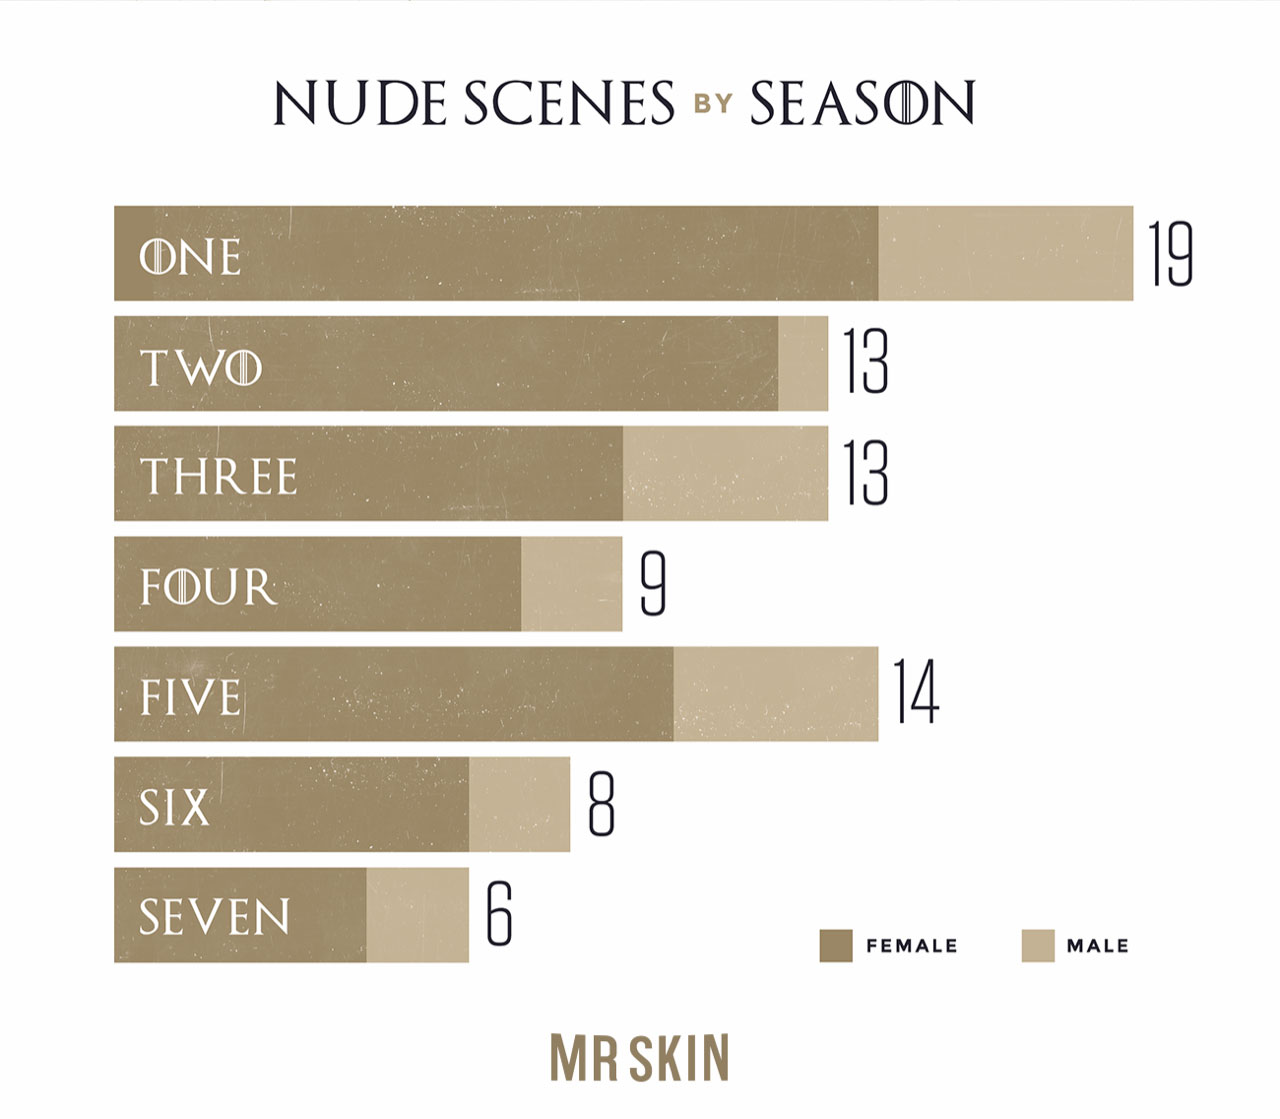 Game of Thrones Nude Scenes infographic